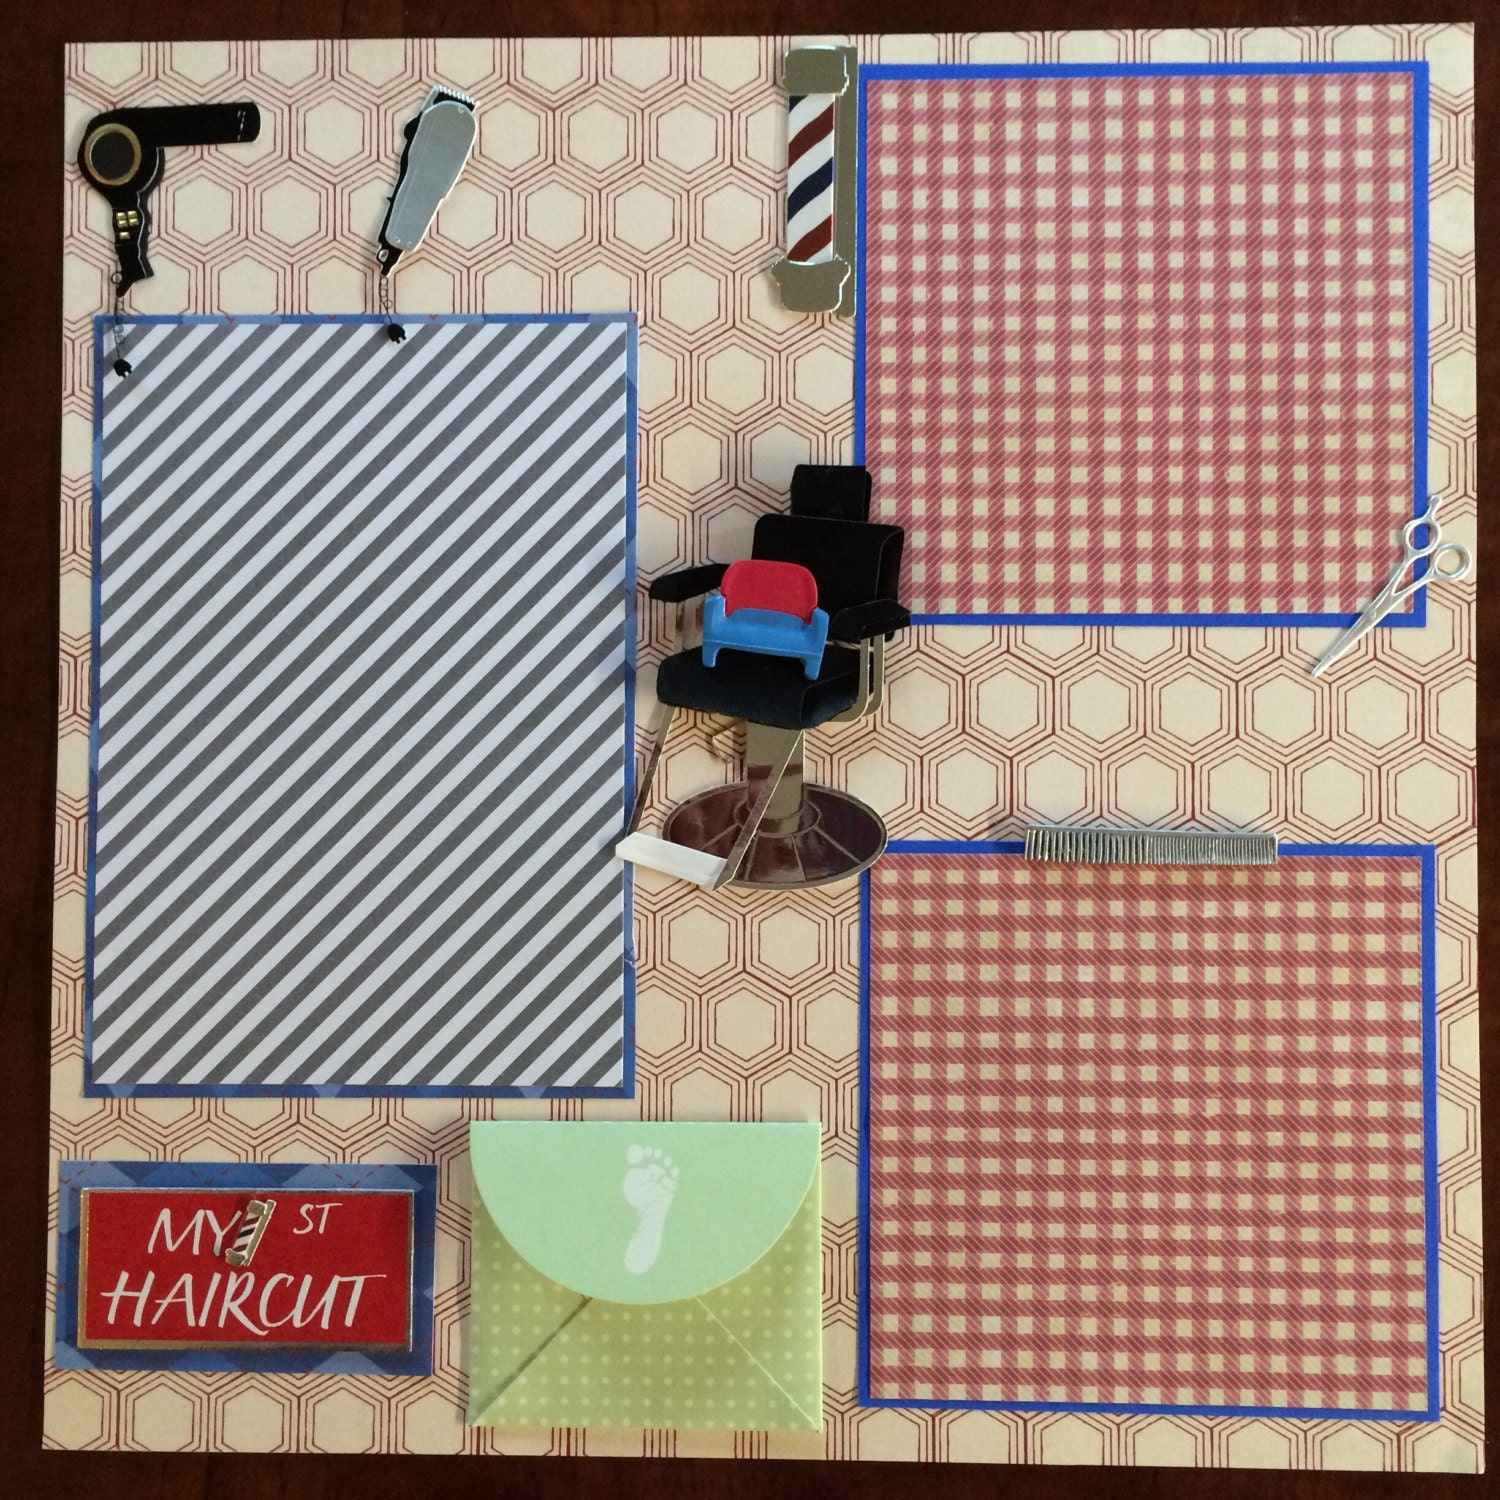 How to Complete Your First Scrapbook Page